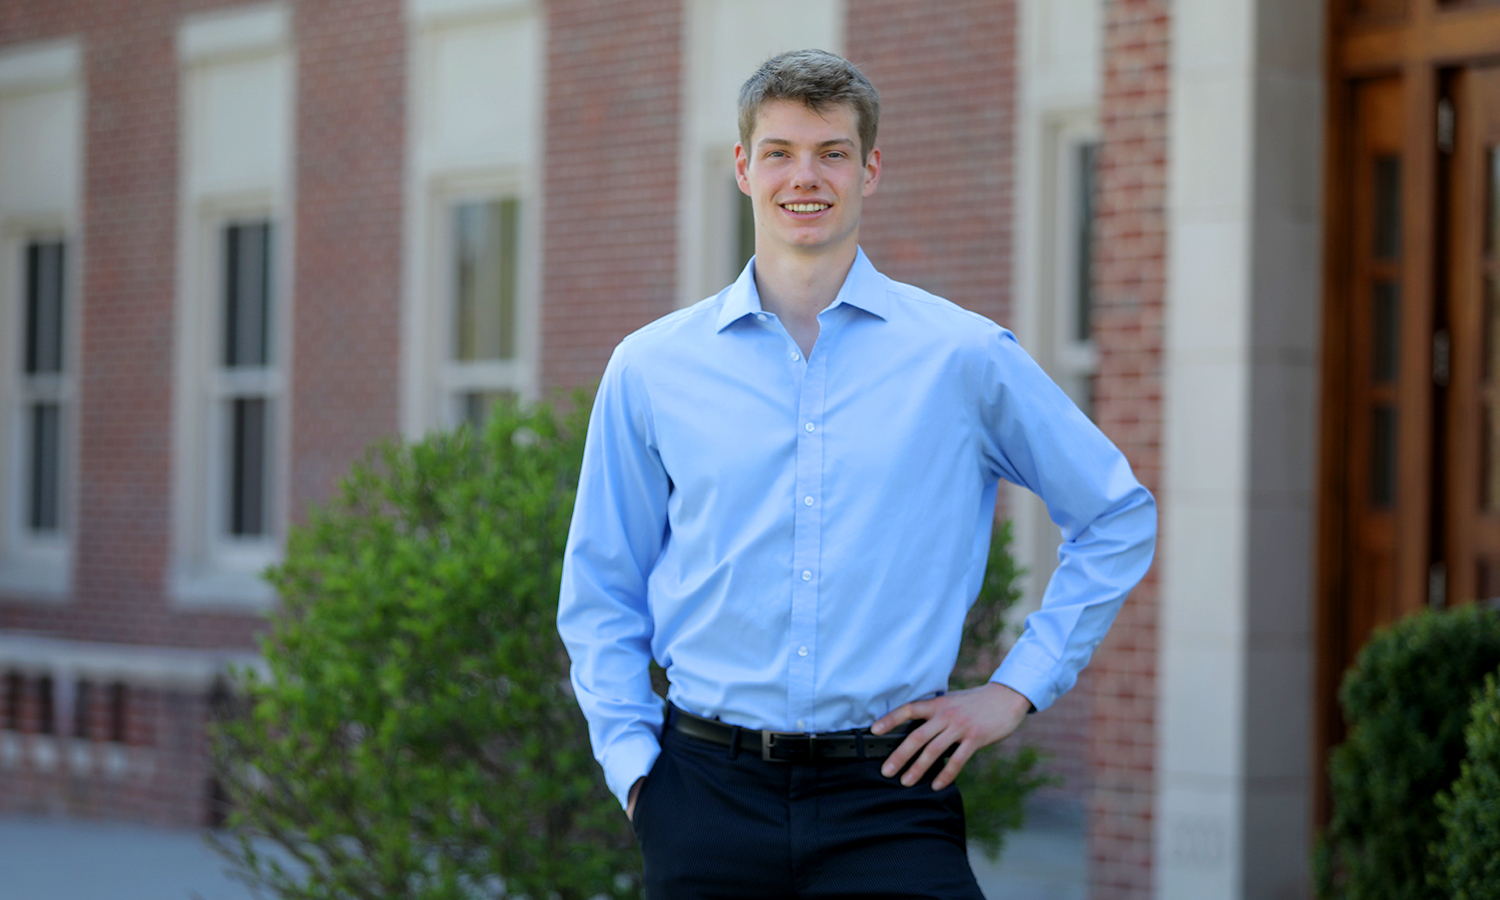 Cole Bardawill '18 poses for a photo in front of Stern Hall. Bardawill recently accepted a position working as an Analyst at Goldman Sachs, a leading global investment banking, securities and investment management firm.